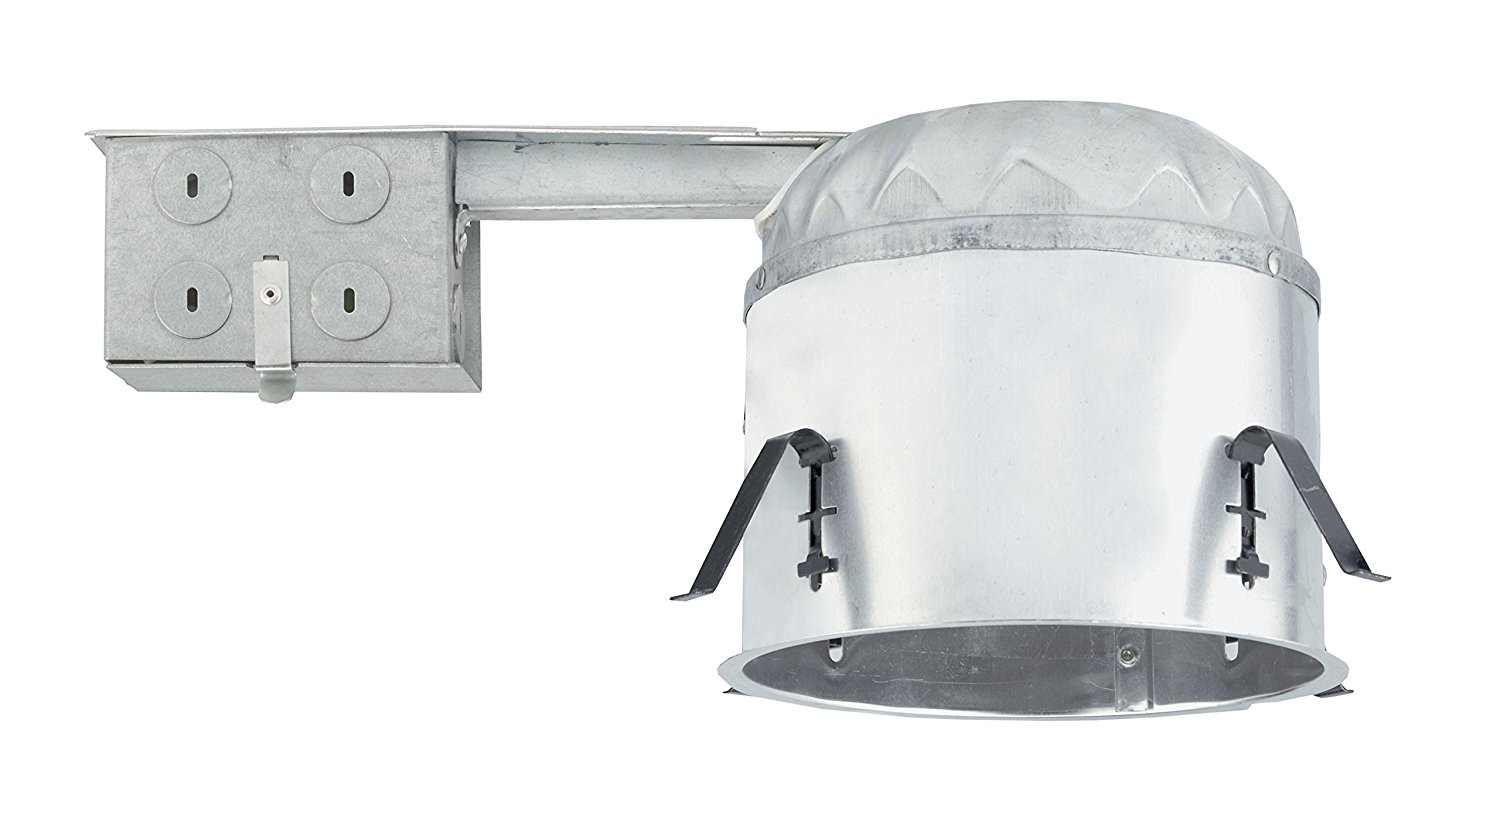 NICOR Lighting 6-Inch IC Rated Shallow Recessed LED Remodel Housing with IDEAL Connection (17014AR-LED-ID)